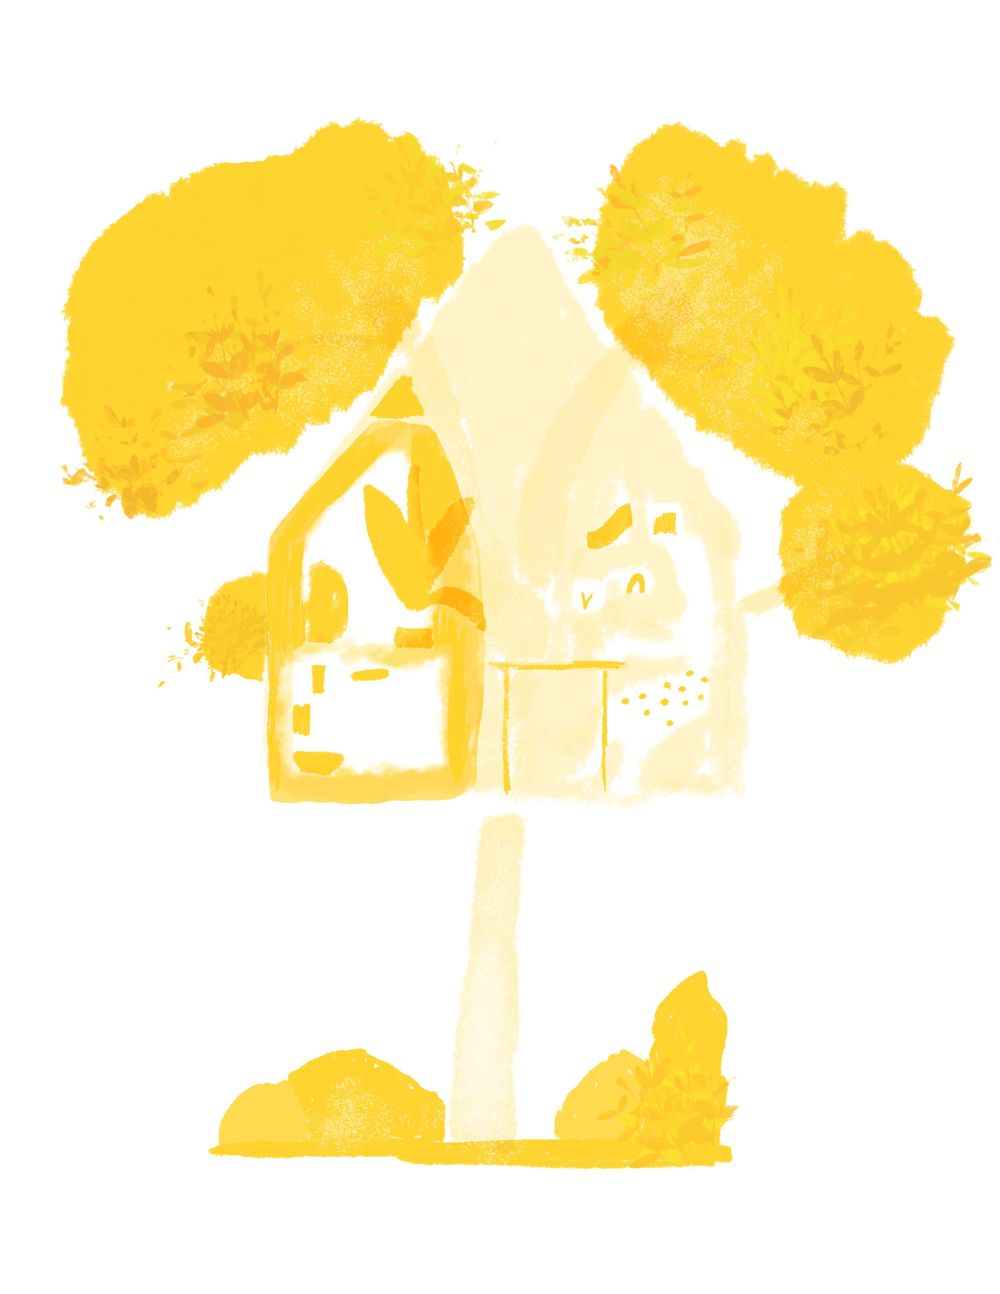 My dream studio: A Tree House - image 4 - student project